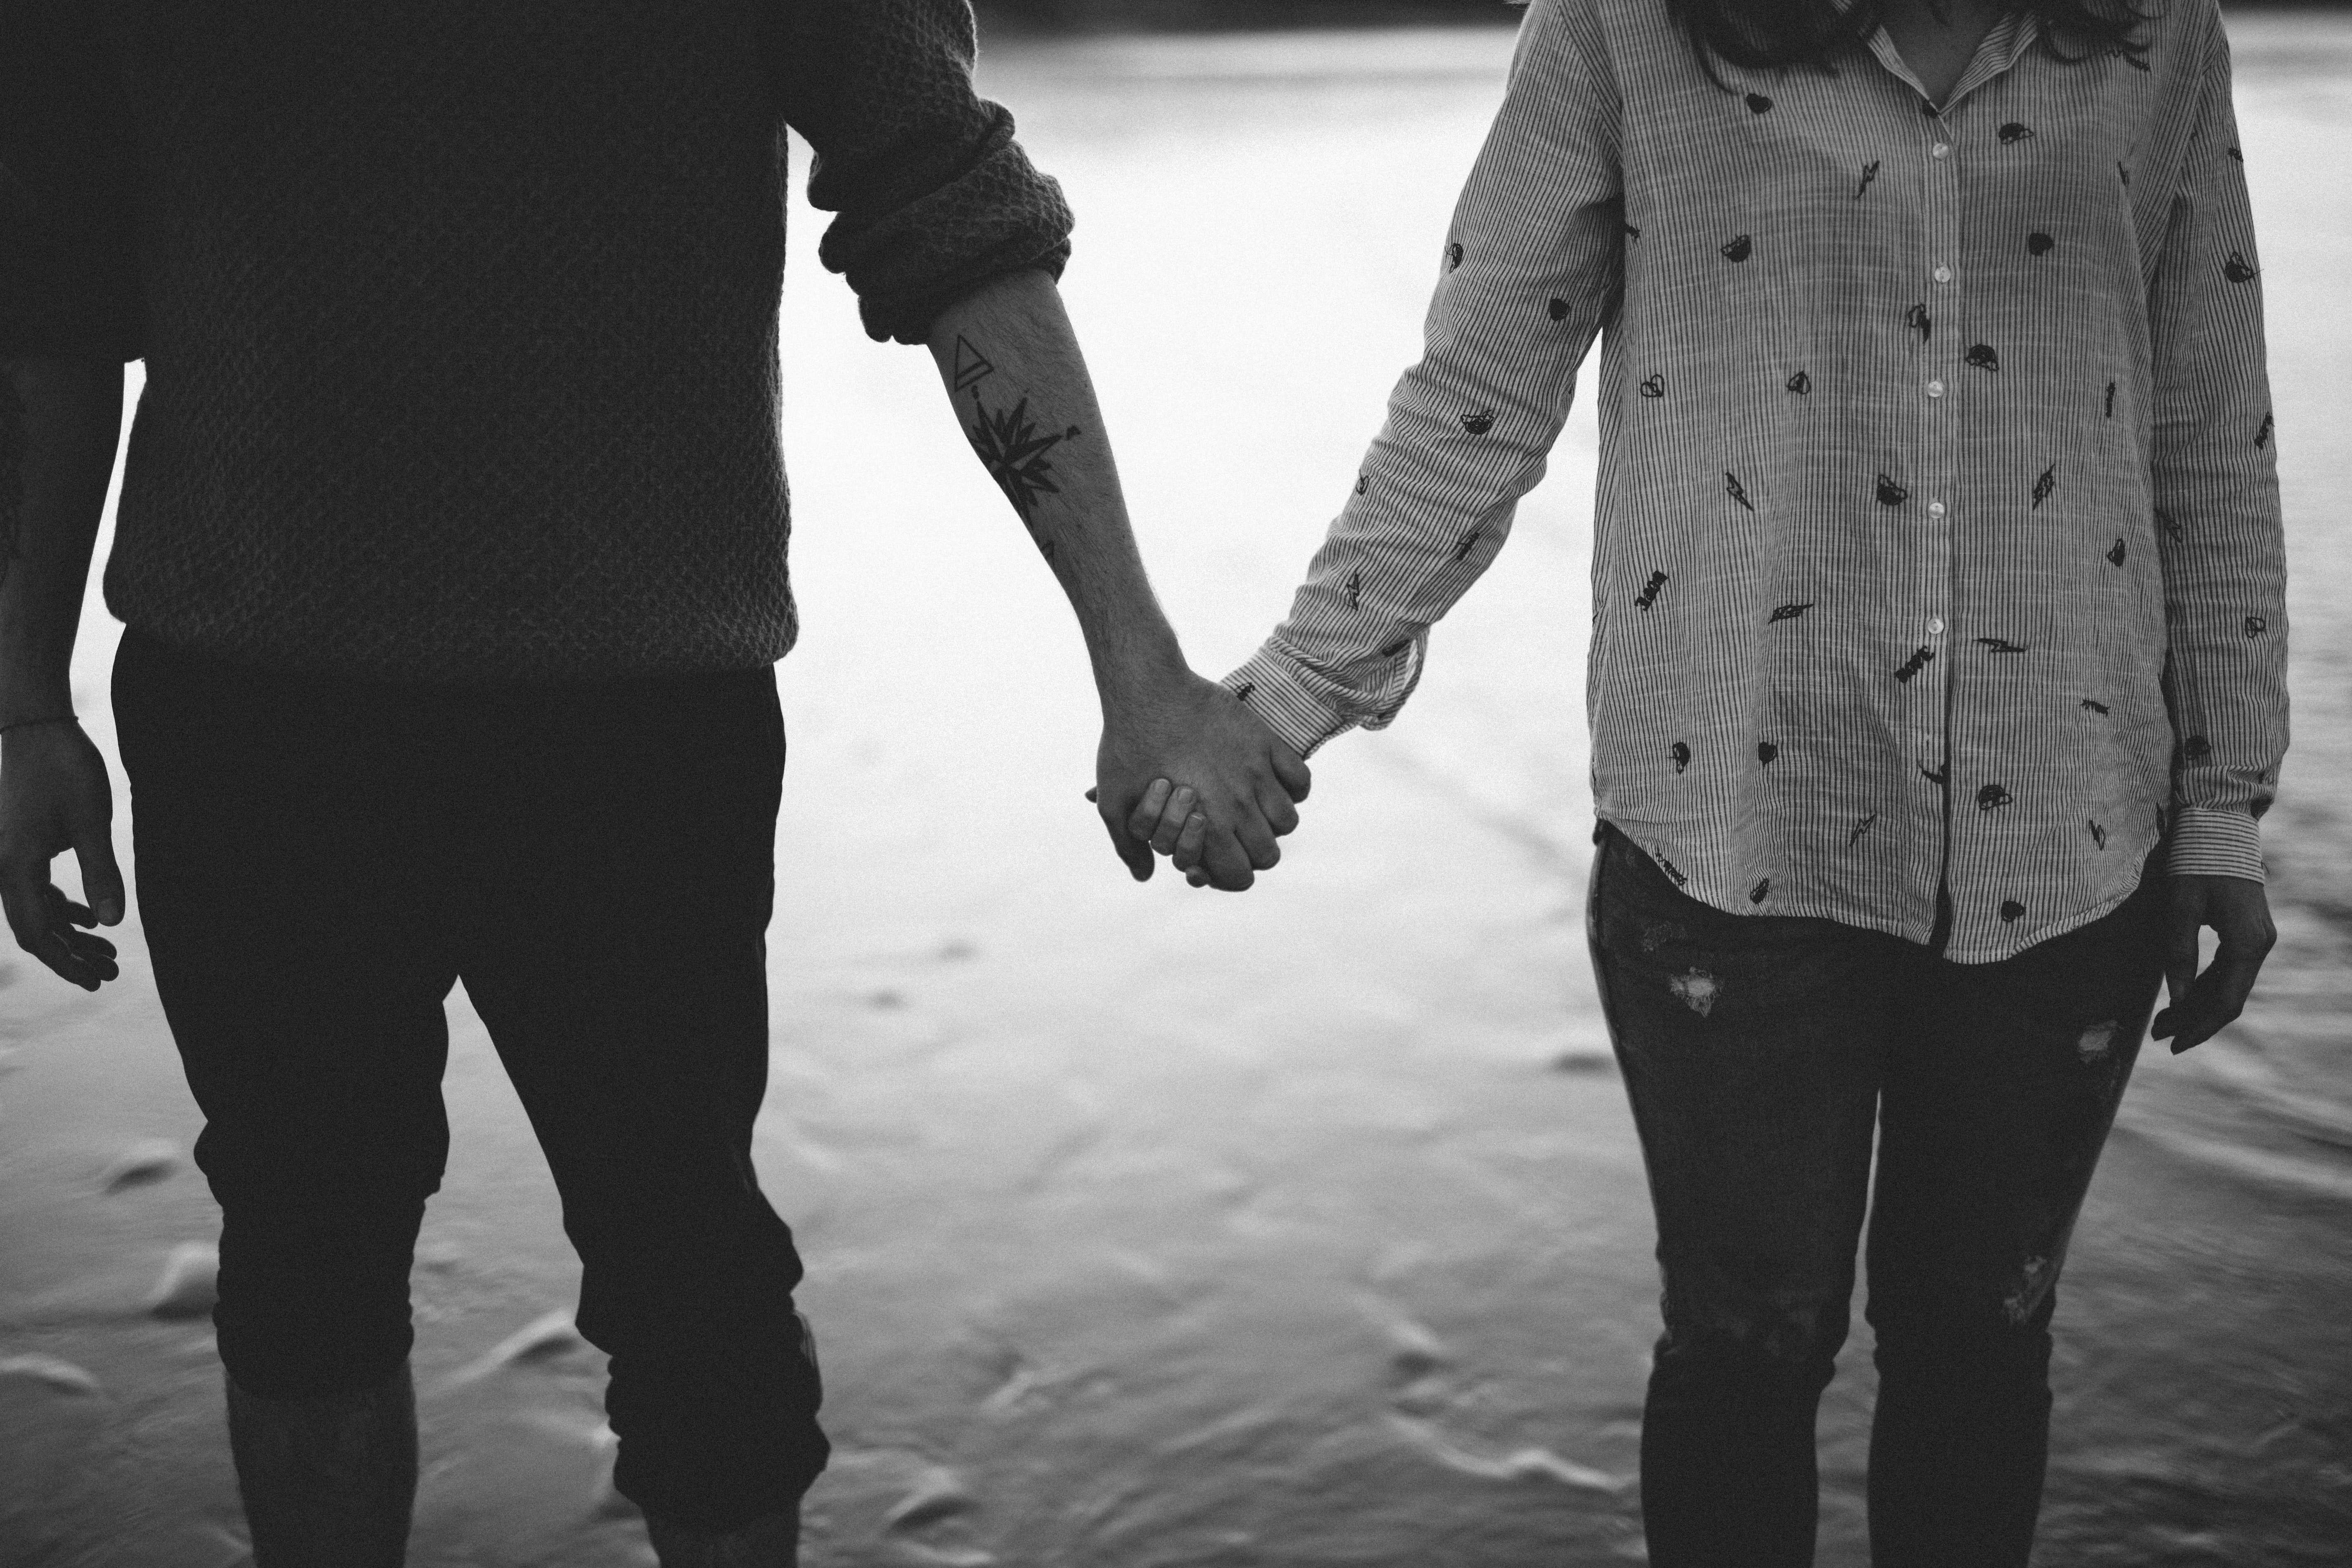 man and woman holding hands standing on body of water